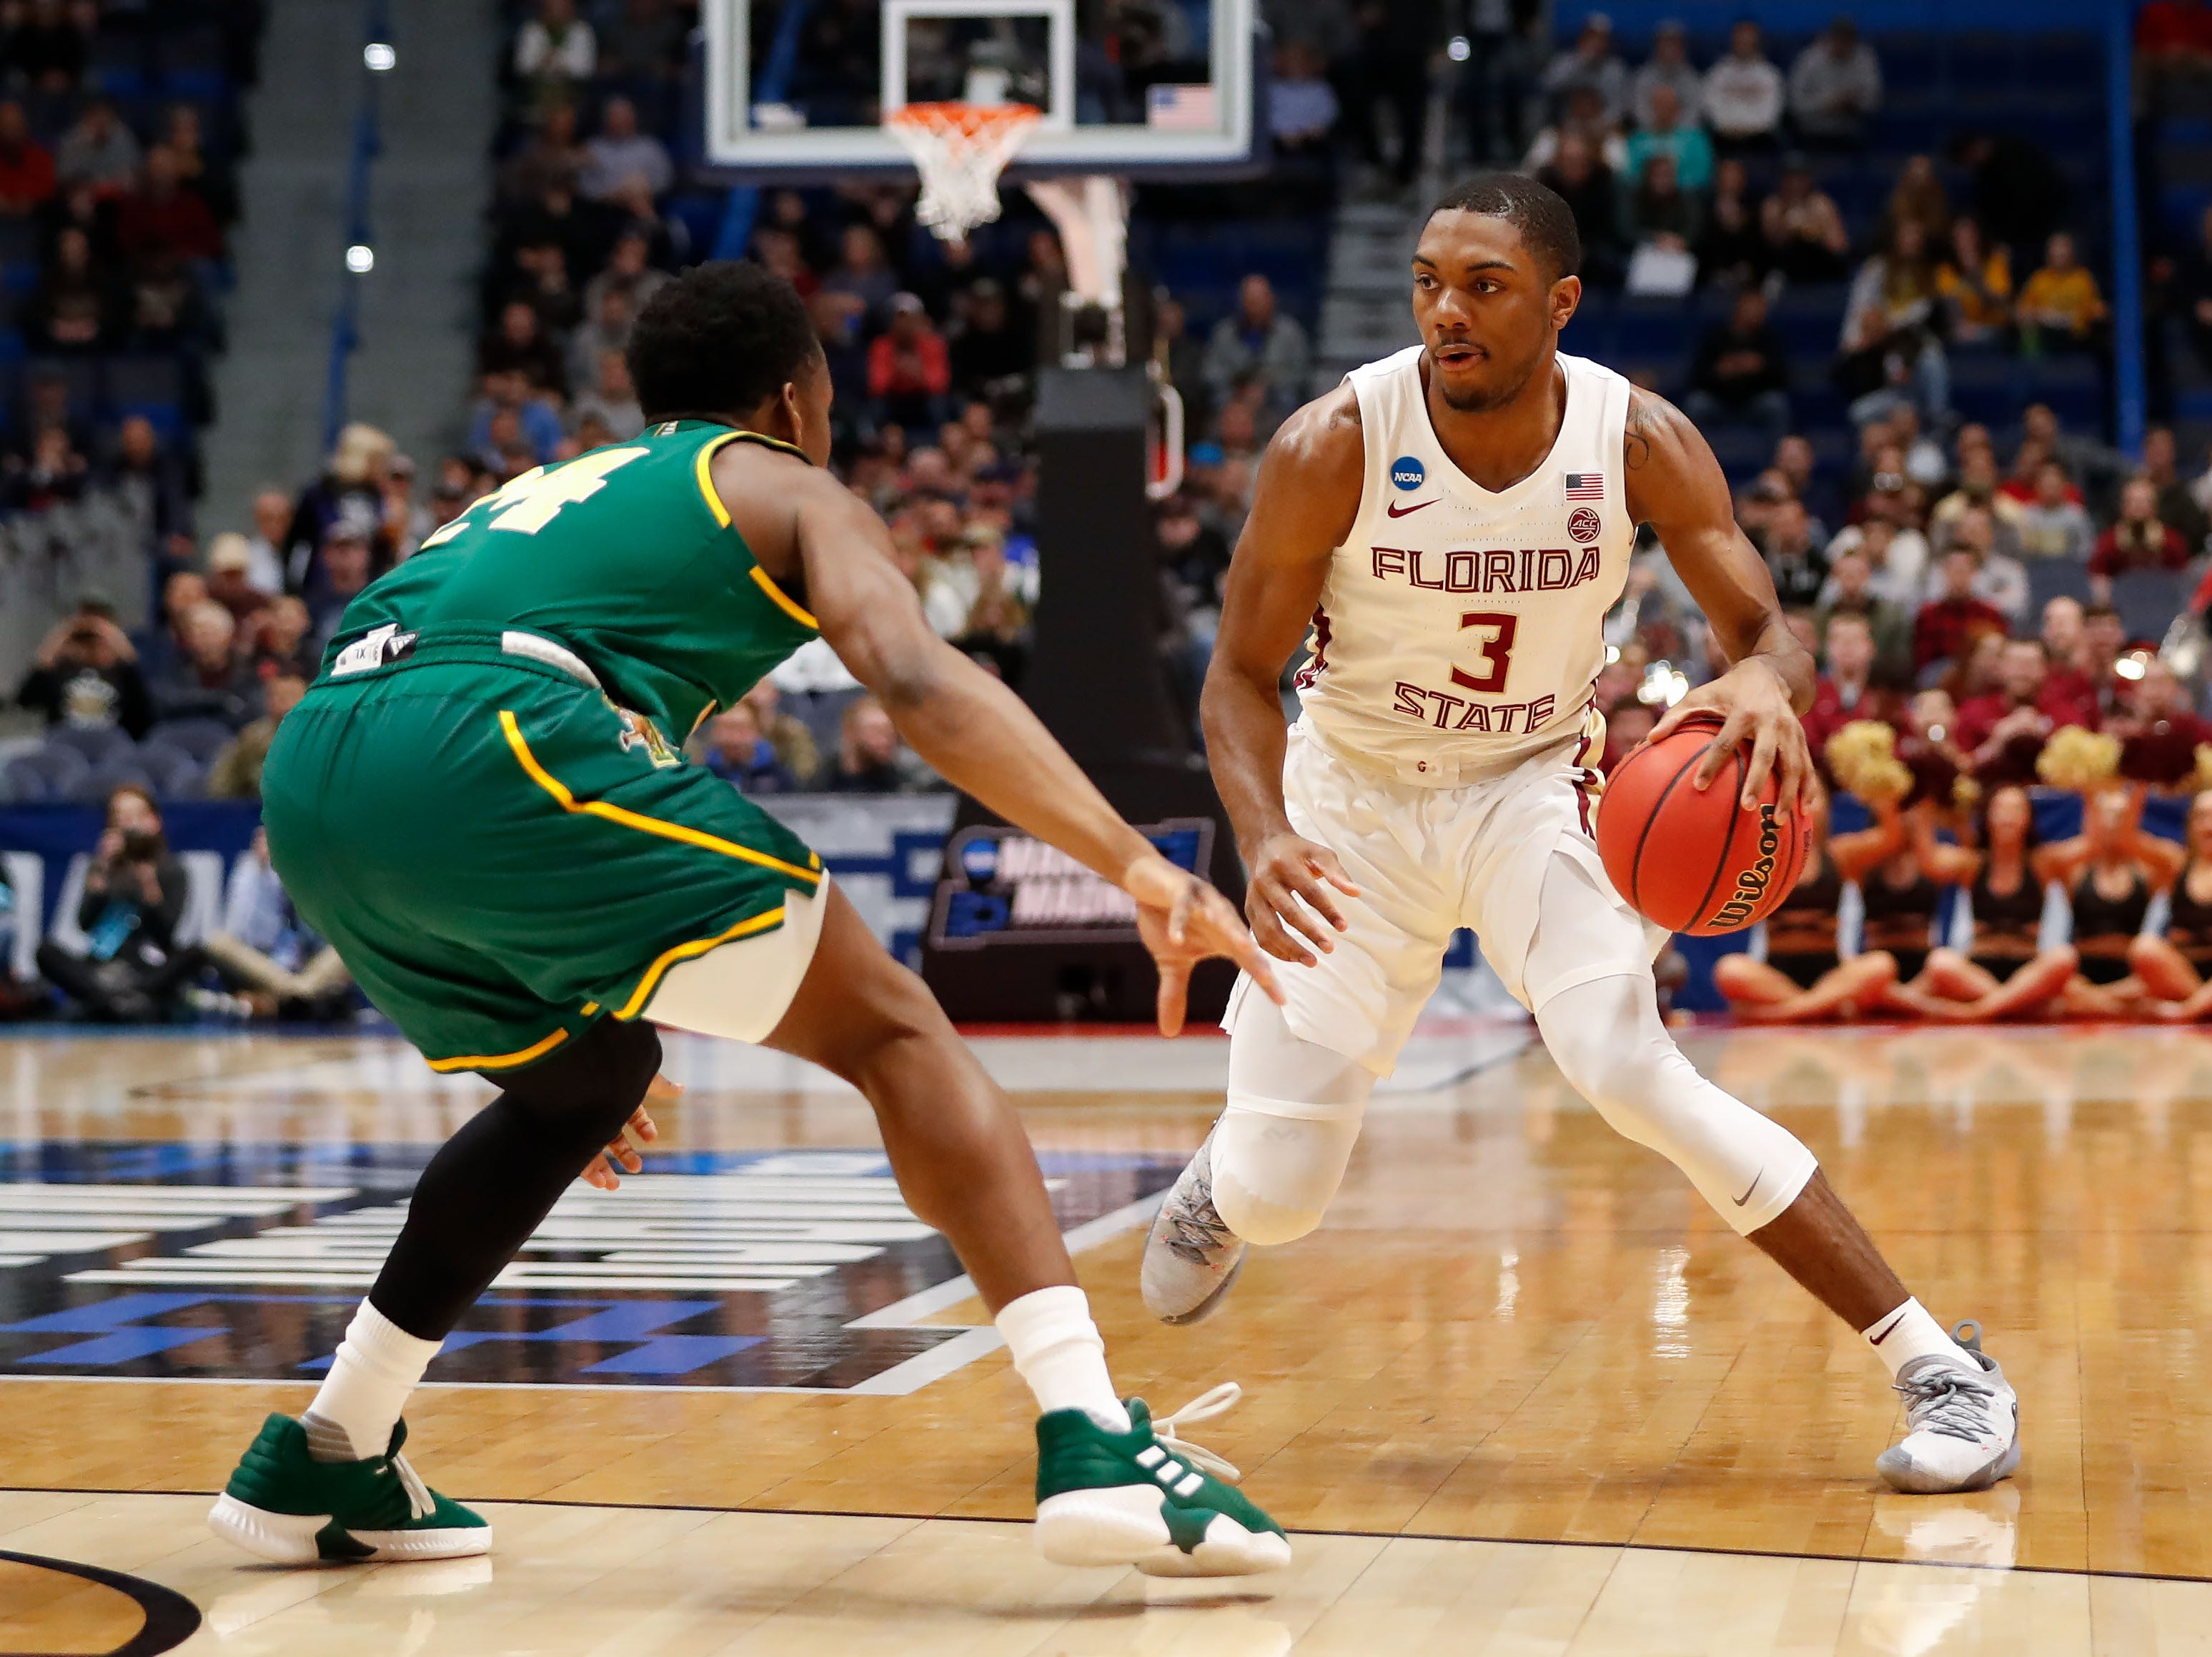 Mar 21, 2019; Hartford, CT, USA; Florida State Seminoles guard Trent Forrest (3) controls the ball in front of Vermont Catamounts guard Ben Shungu (24) during the first half of a game in the first round of the 2019 NCAA Tournament at XL Center. Mandatory Credit: David Butler II-USA TODAY Sports